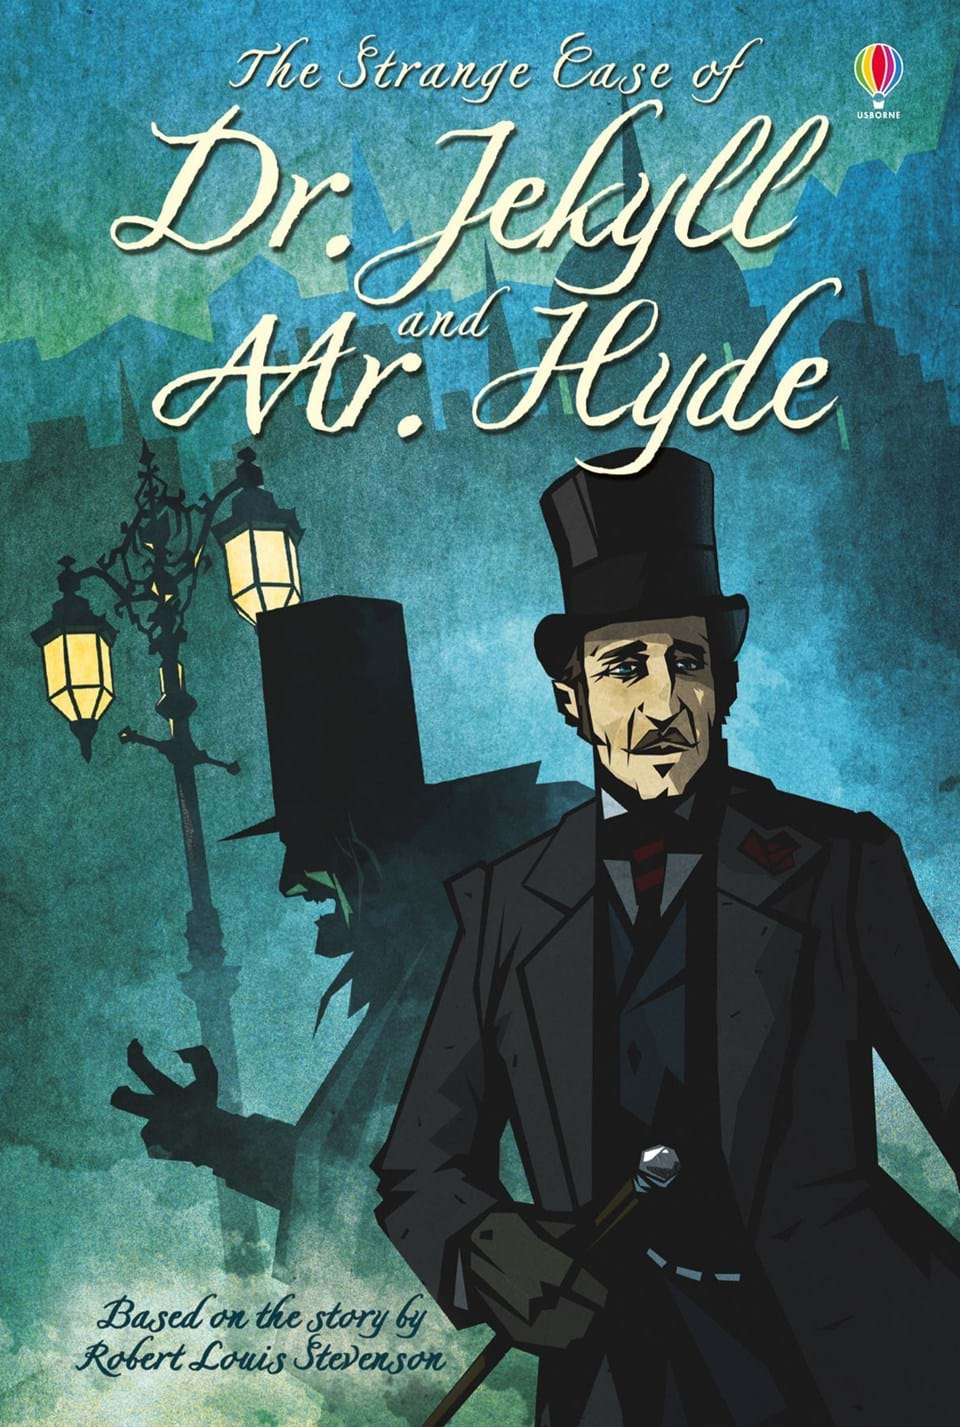 """The Strange Case of Dr. Jekyll and Mr. Hyde"" at Usborne"